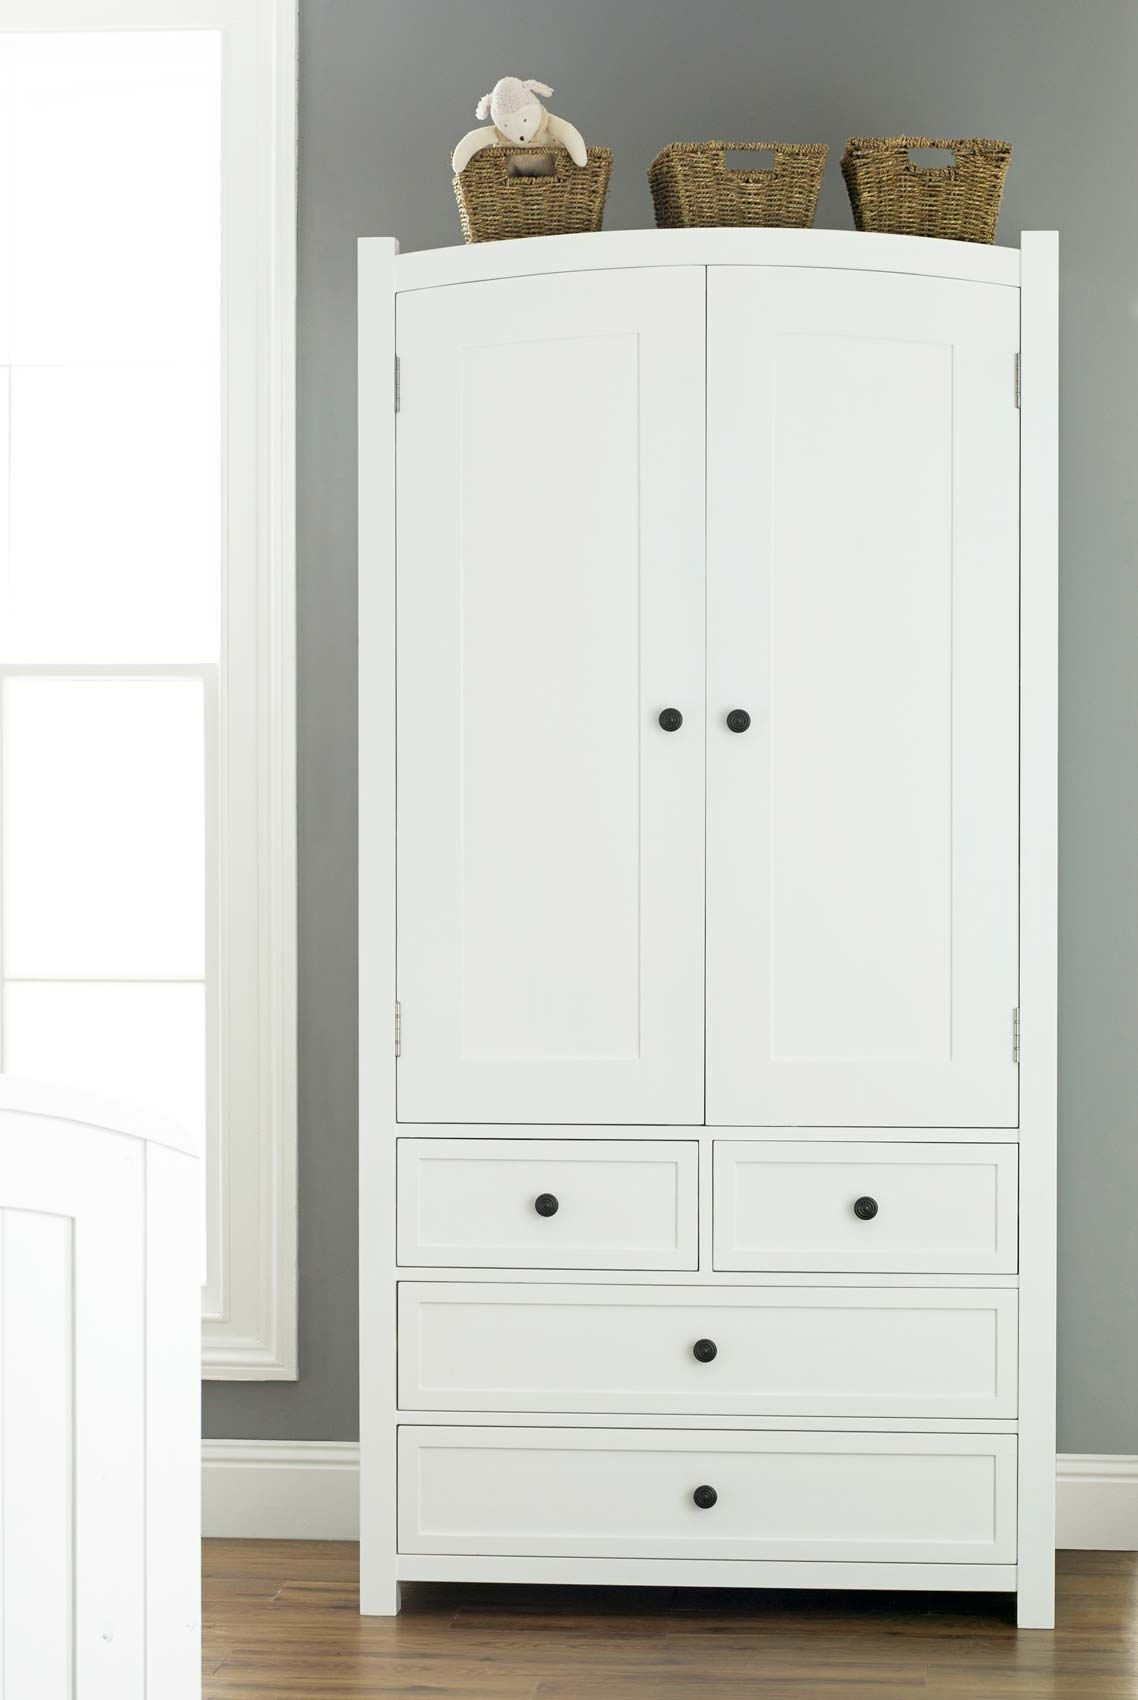 Doorless Kids Wardrobe With Drawers From Light Wood Material Within Wardrobes With Shelves And Drawers (View 13 of 15)